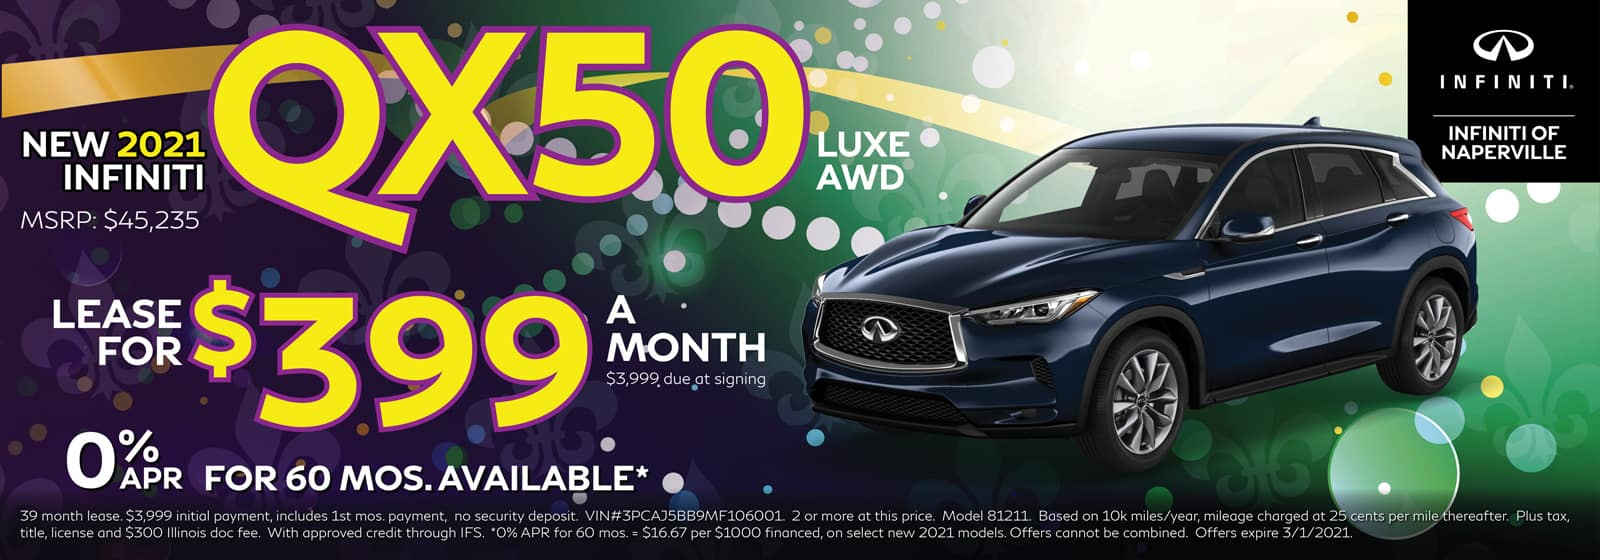 2021 INFINITI QX50 lease offer, $399/mo for 39 Months | Naperville, IL